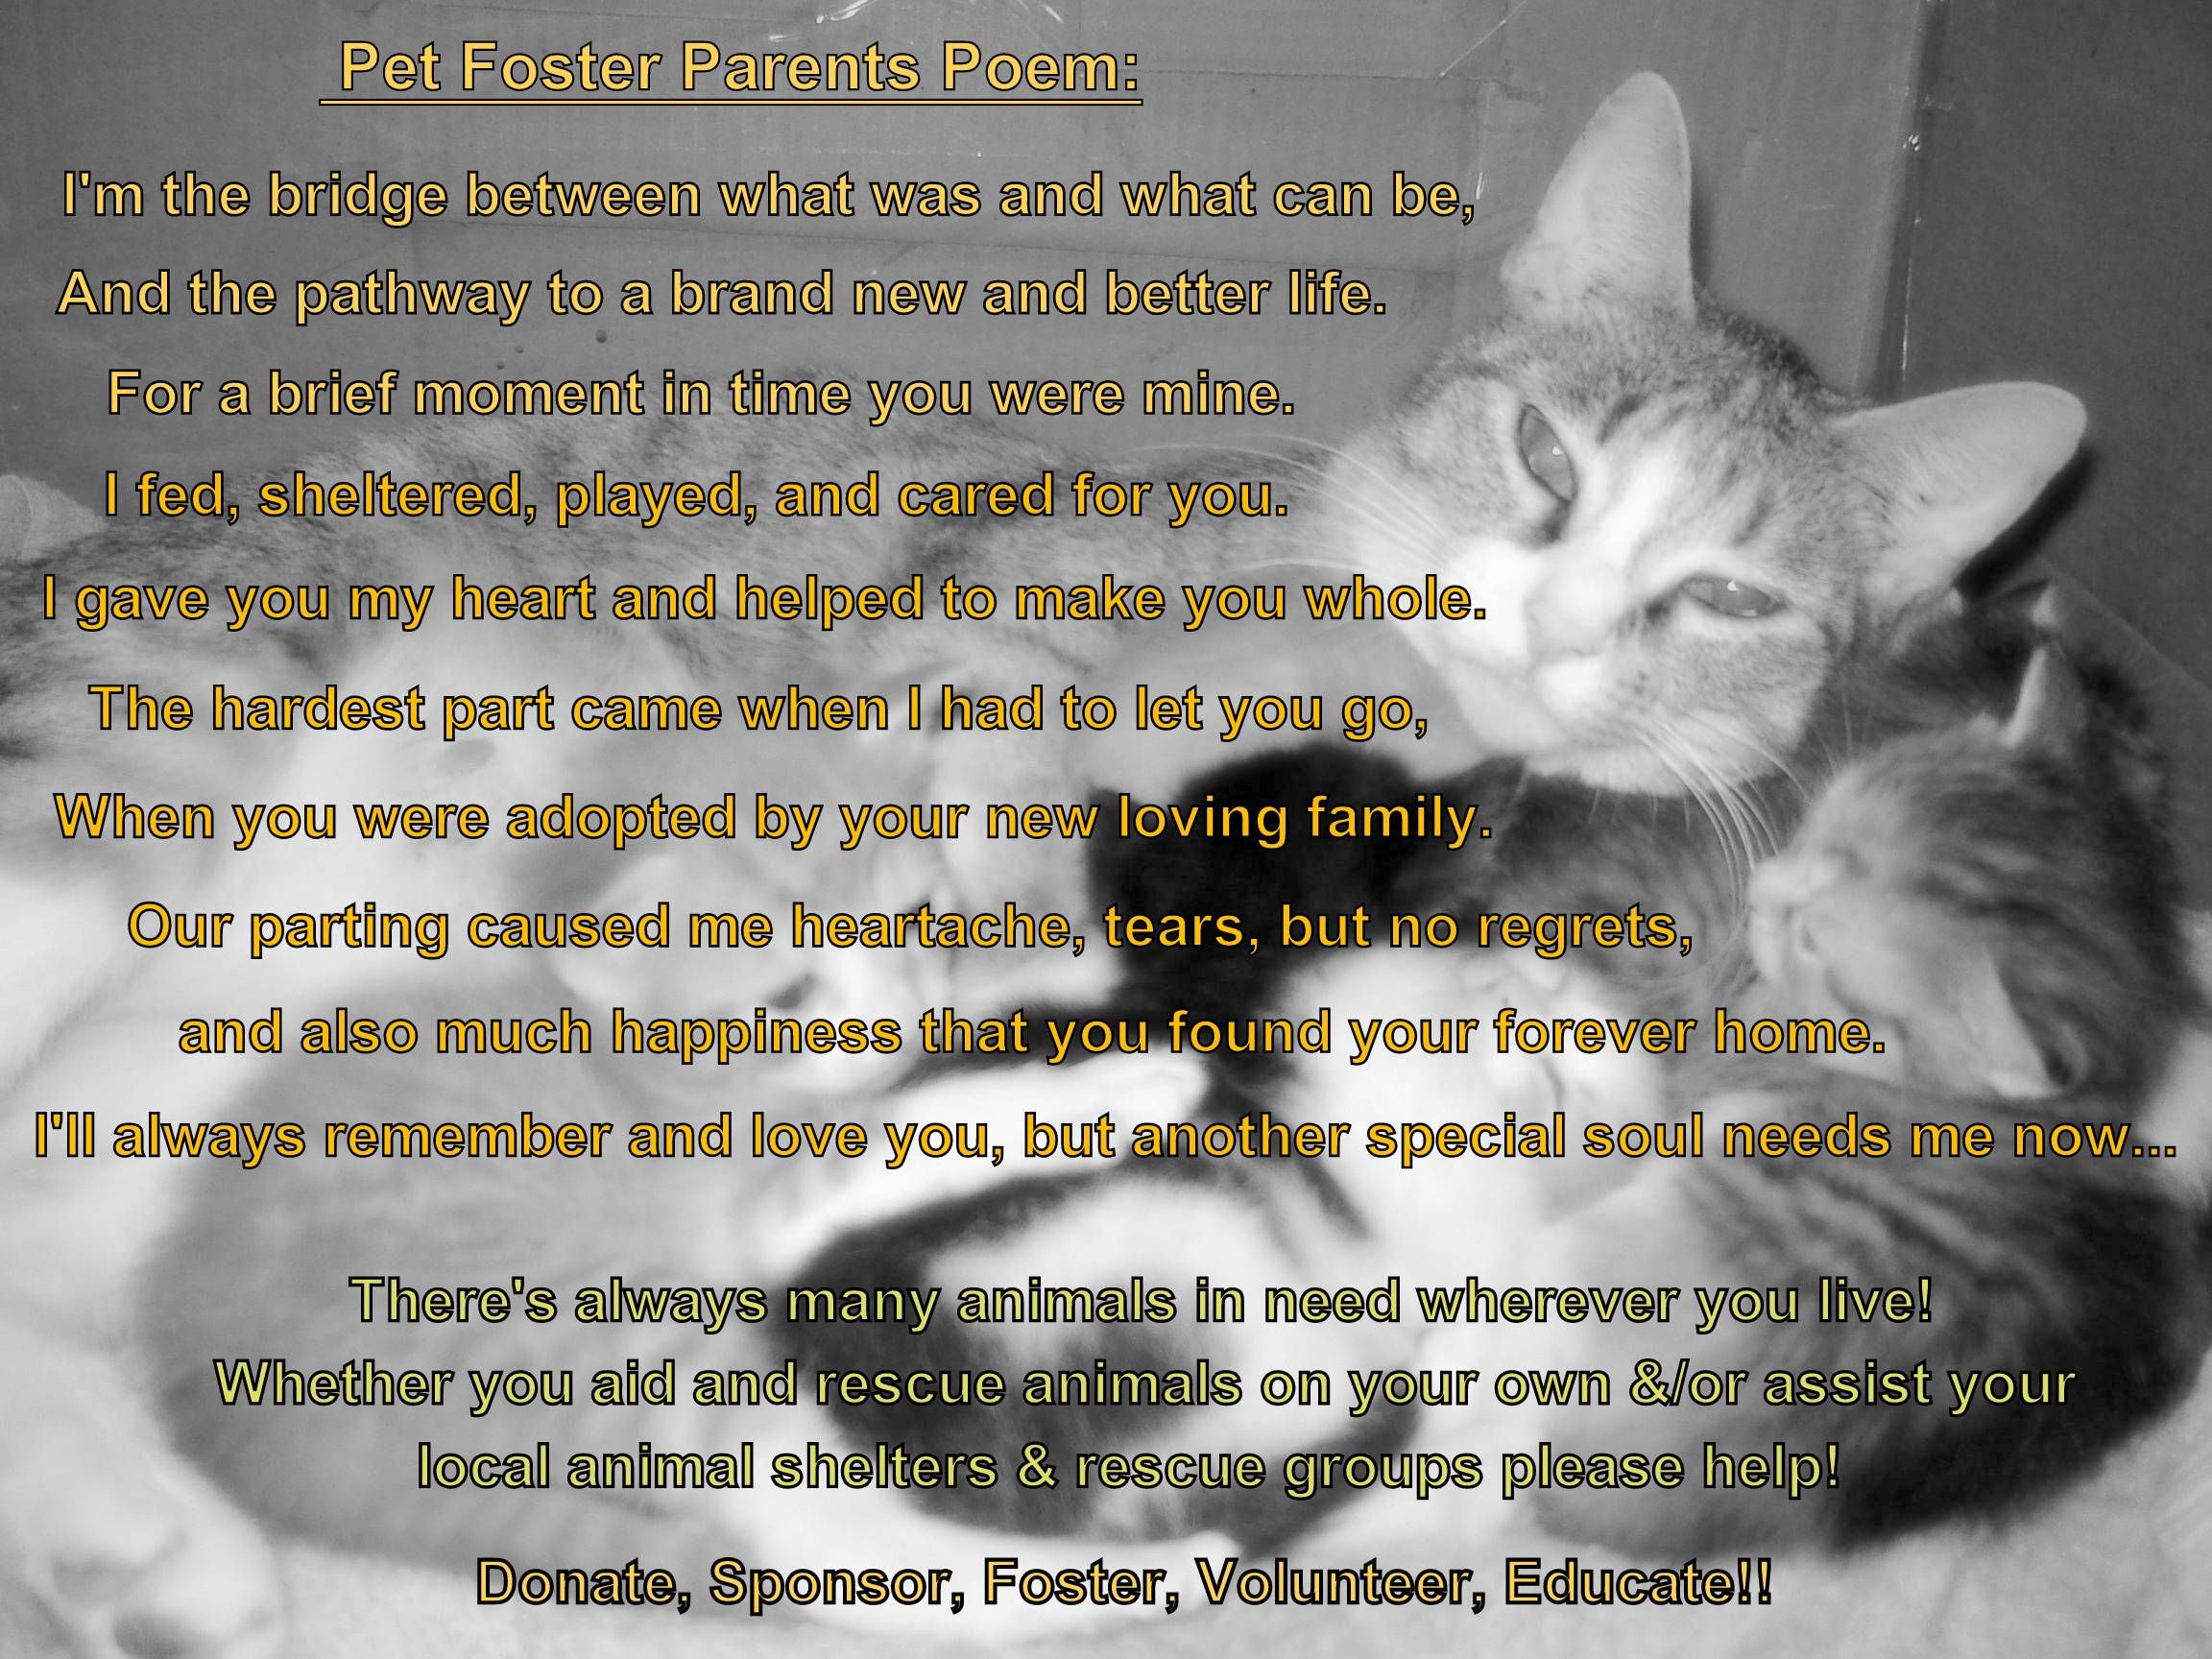 Pet Foster Parent S Poem To All Those Who Foster Rescue Love Animals Like Myself Made With Photo Of One Of The Str Pregnant Cat Parents Poem Pet Loss Cat